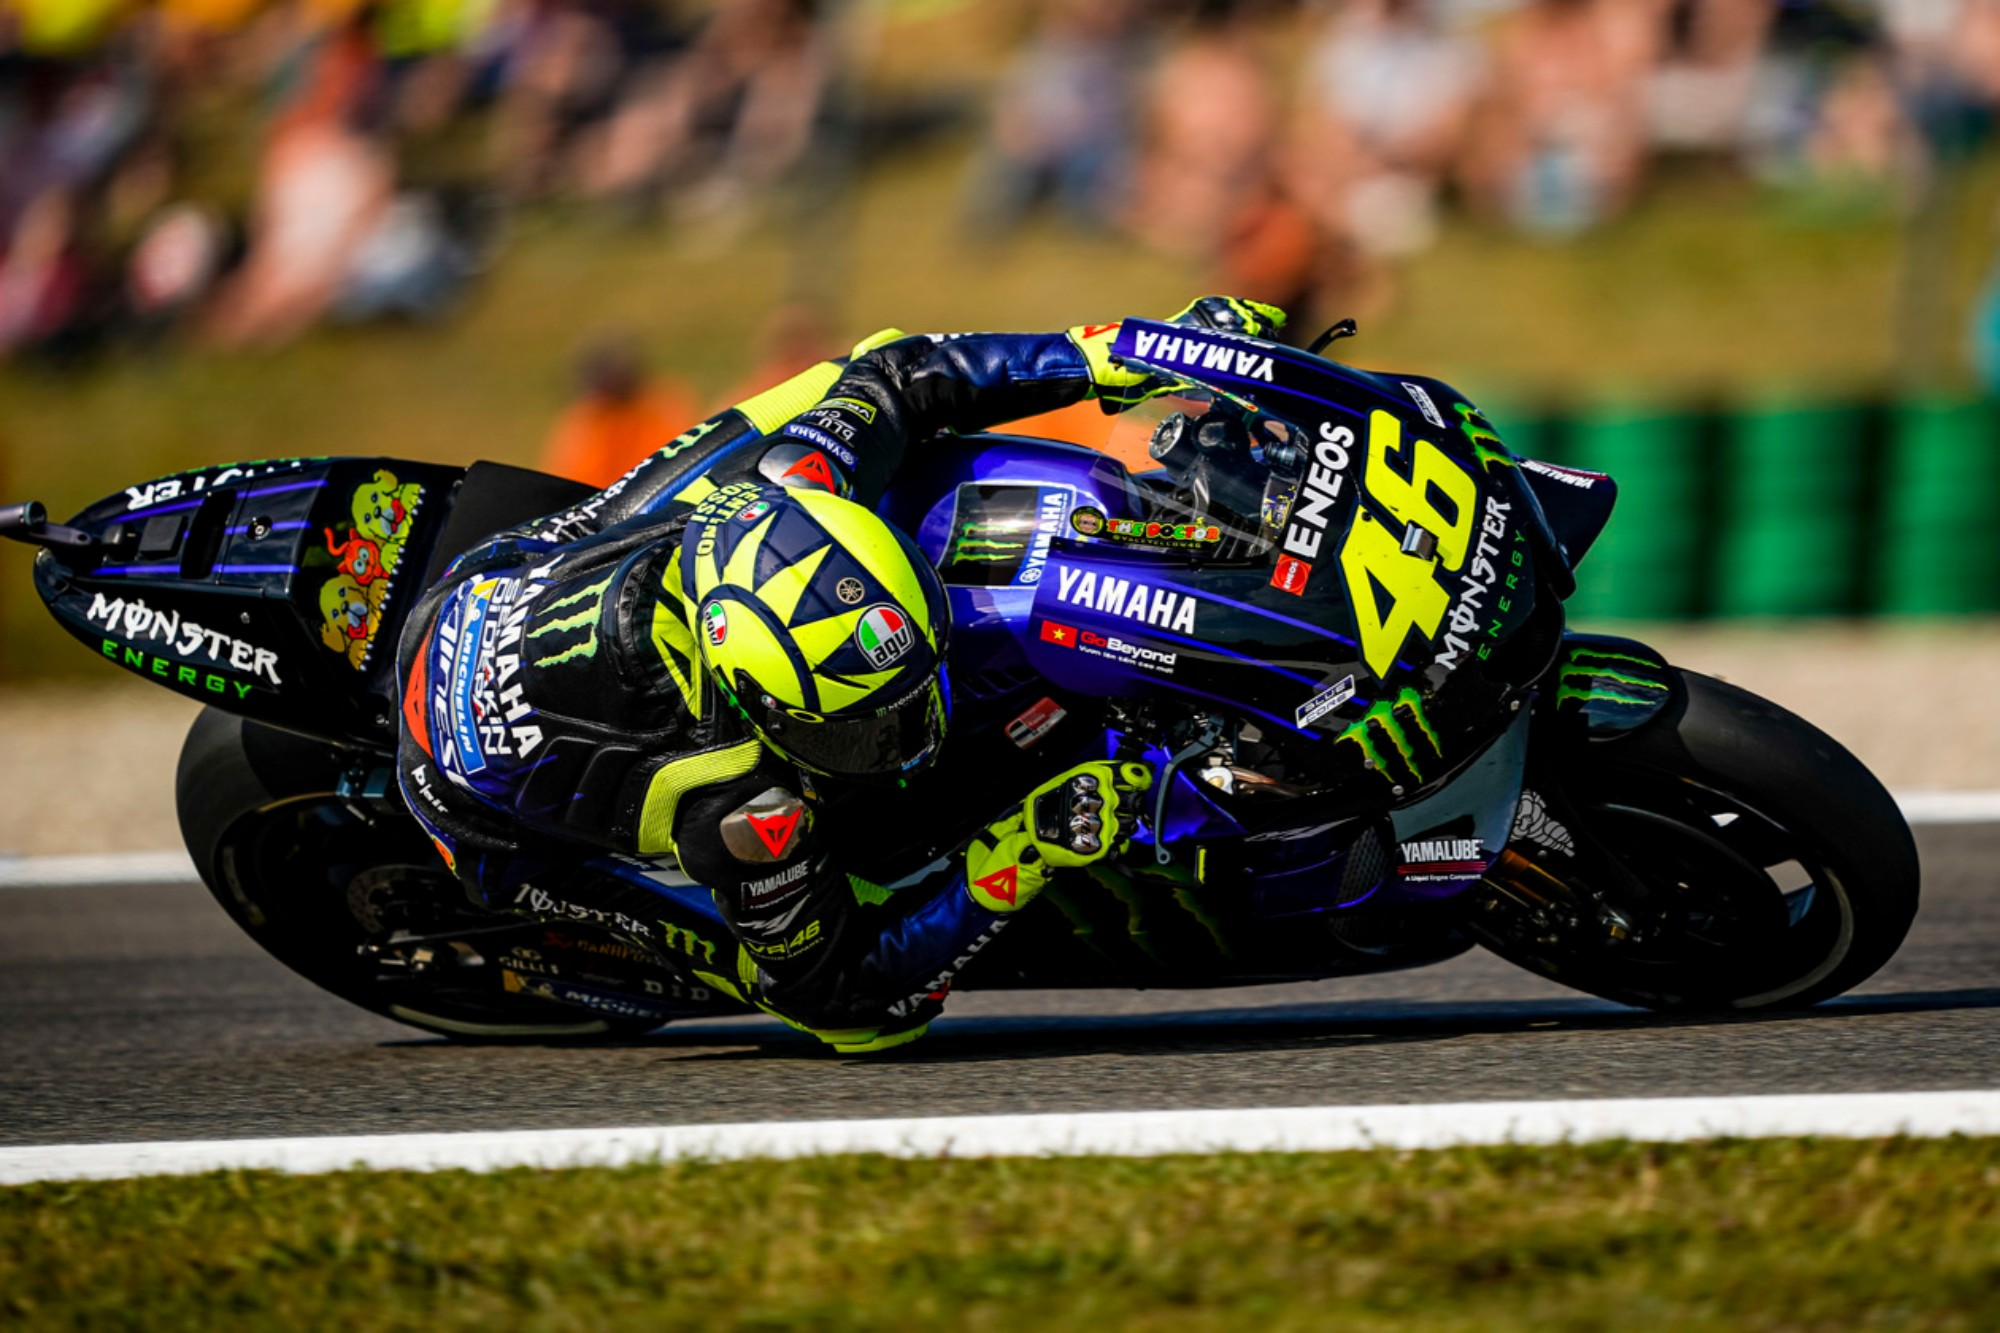 Motogp Valentino Rossi Says This Is Not A Positive Time For Us Roadracing World Magazine Motorcycle Riding Racing Tech News